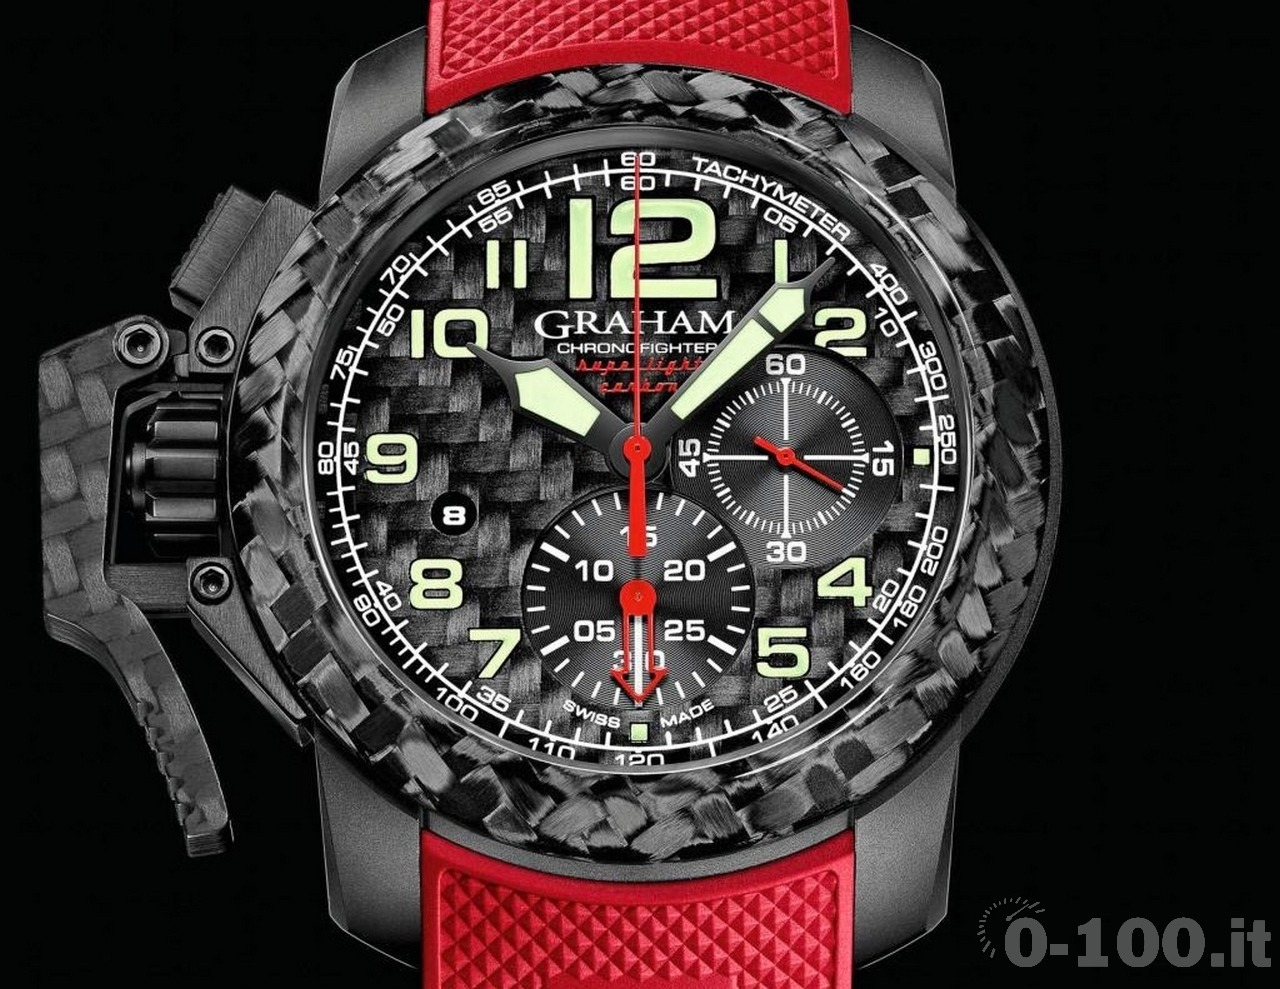 graham-chronofighter-oversize-superlight-carbon-ref-2ccbk-b11a-prezzo-price-0-100_2